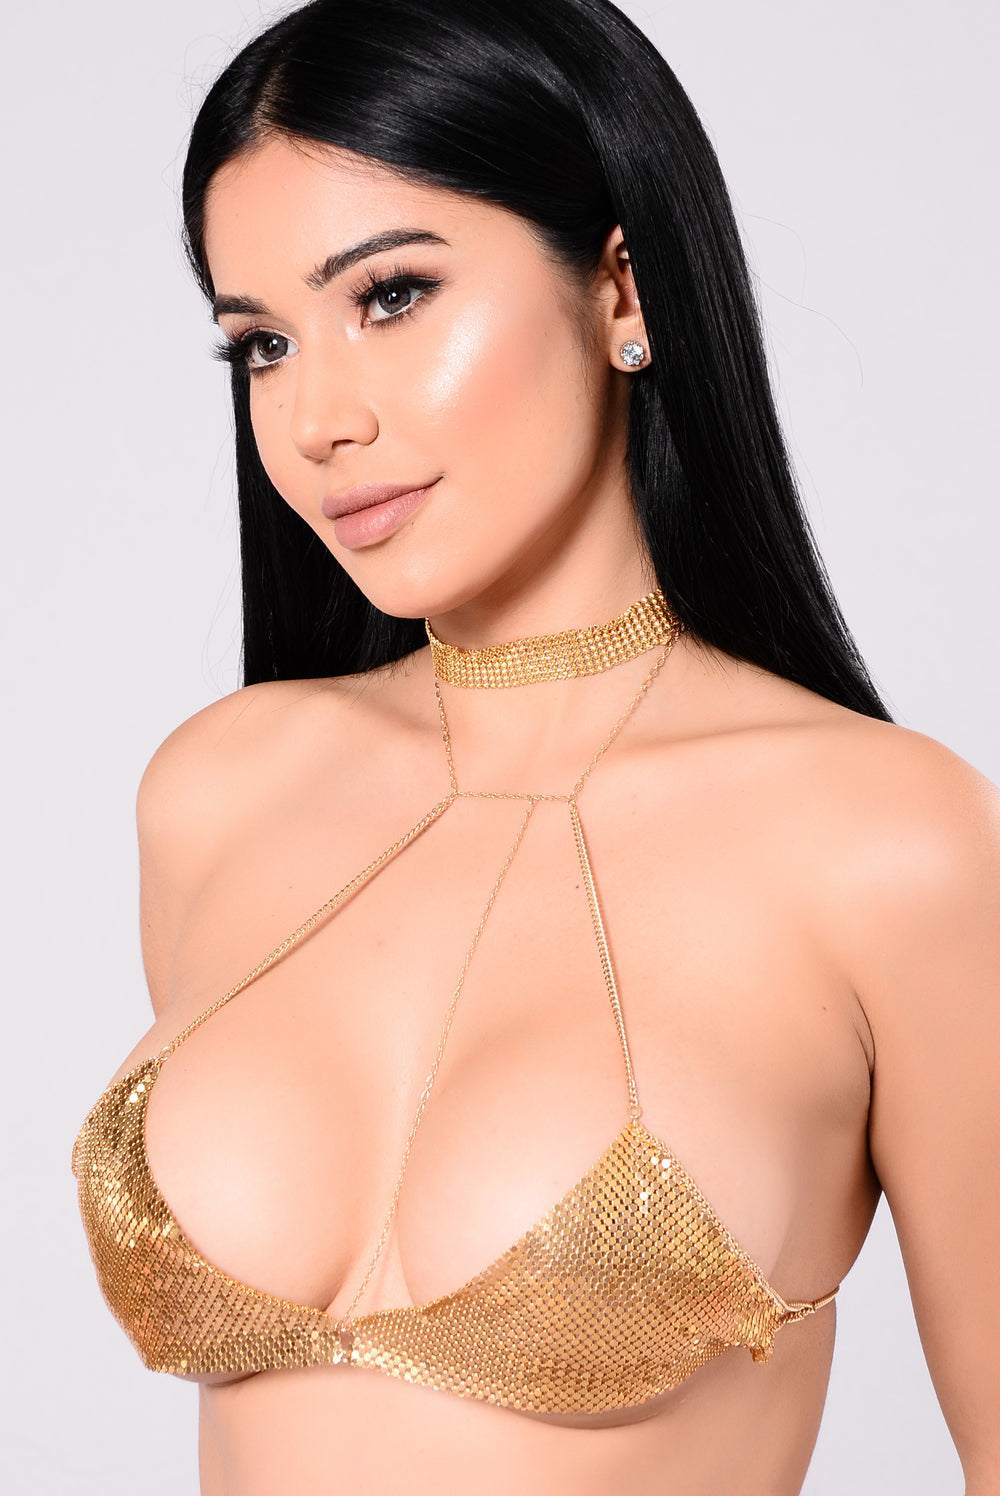 Princessa Metal Bra Chain - Gold